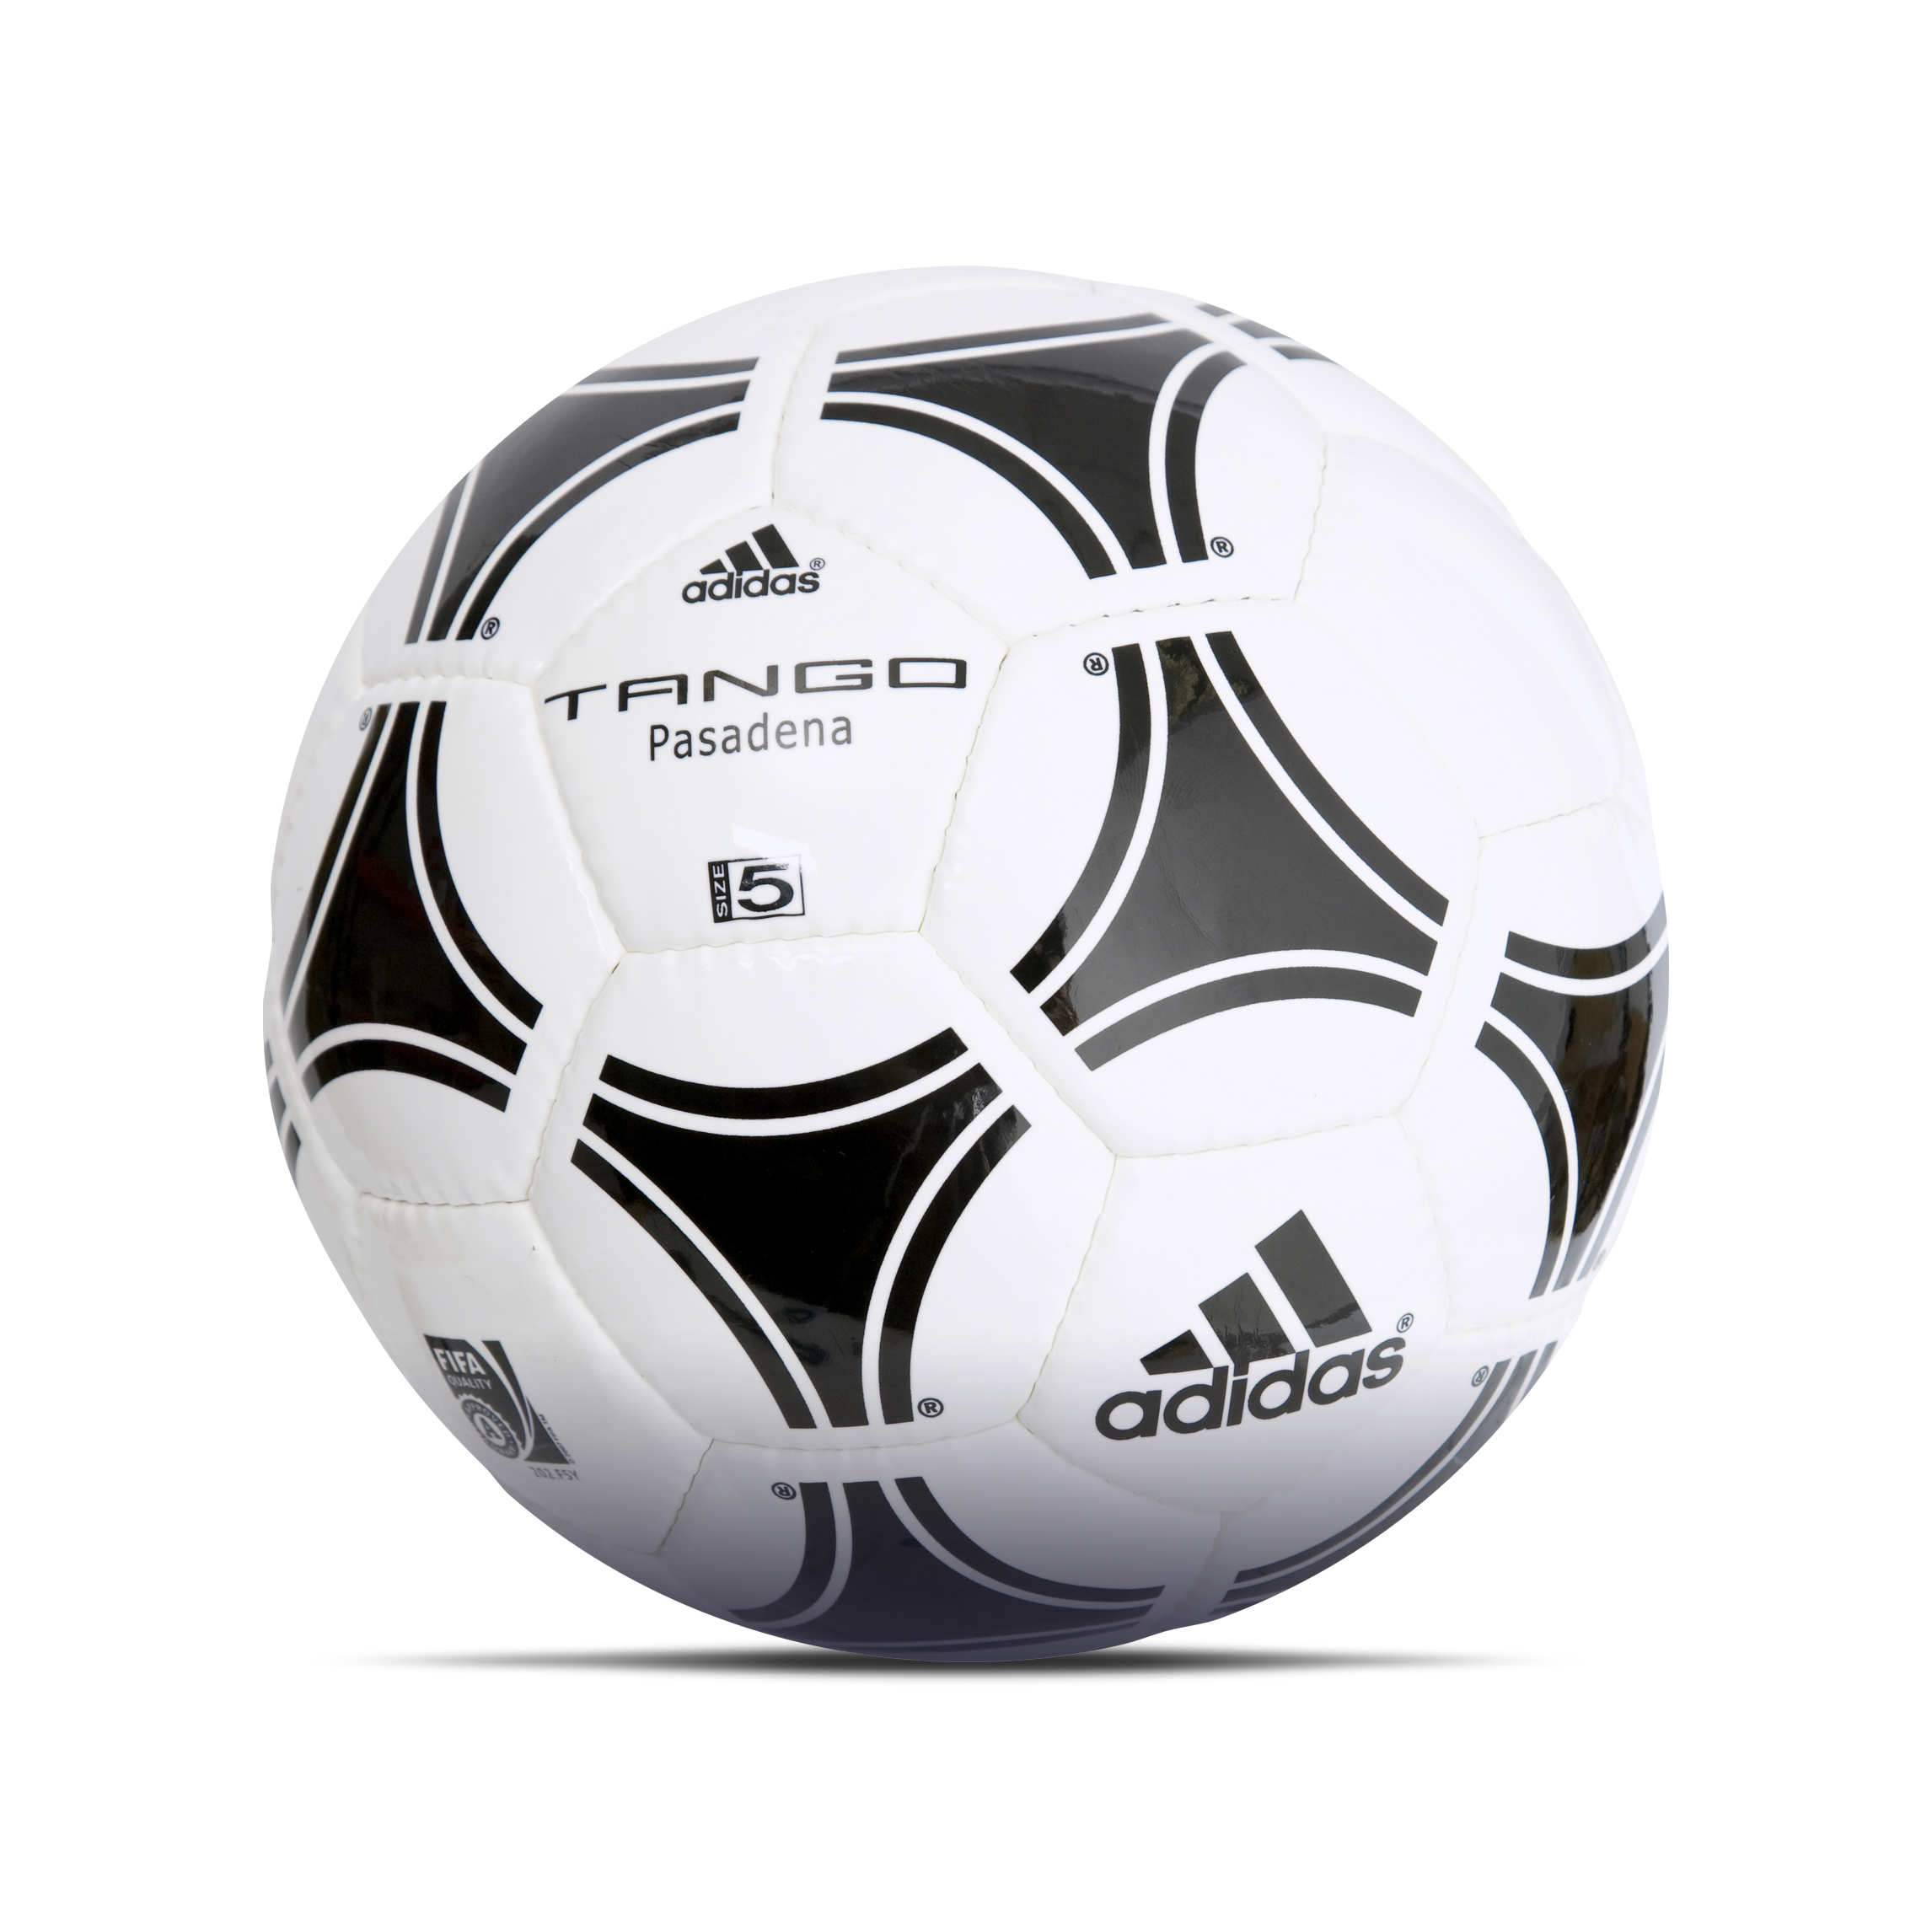 adidas Tango Pasadena Football - White/Black